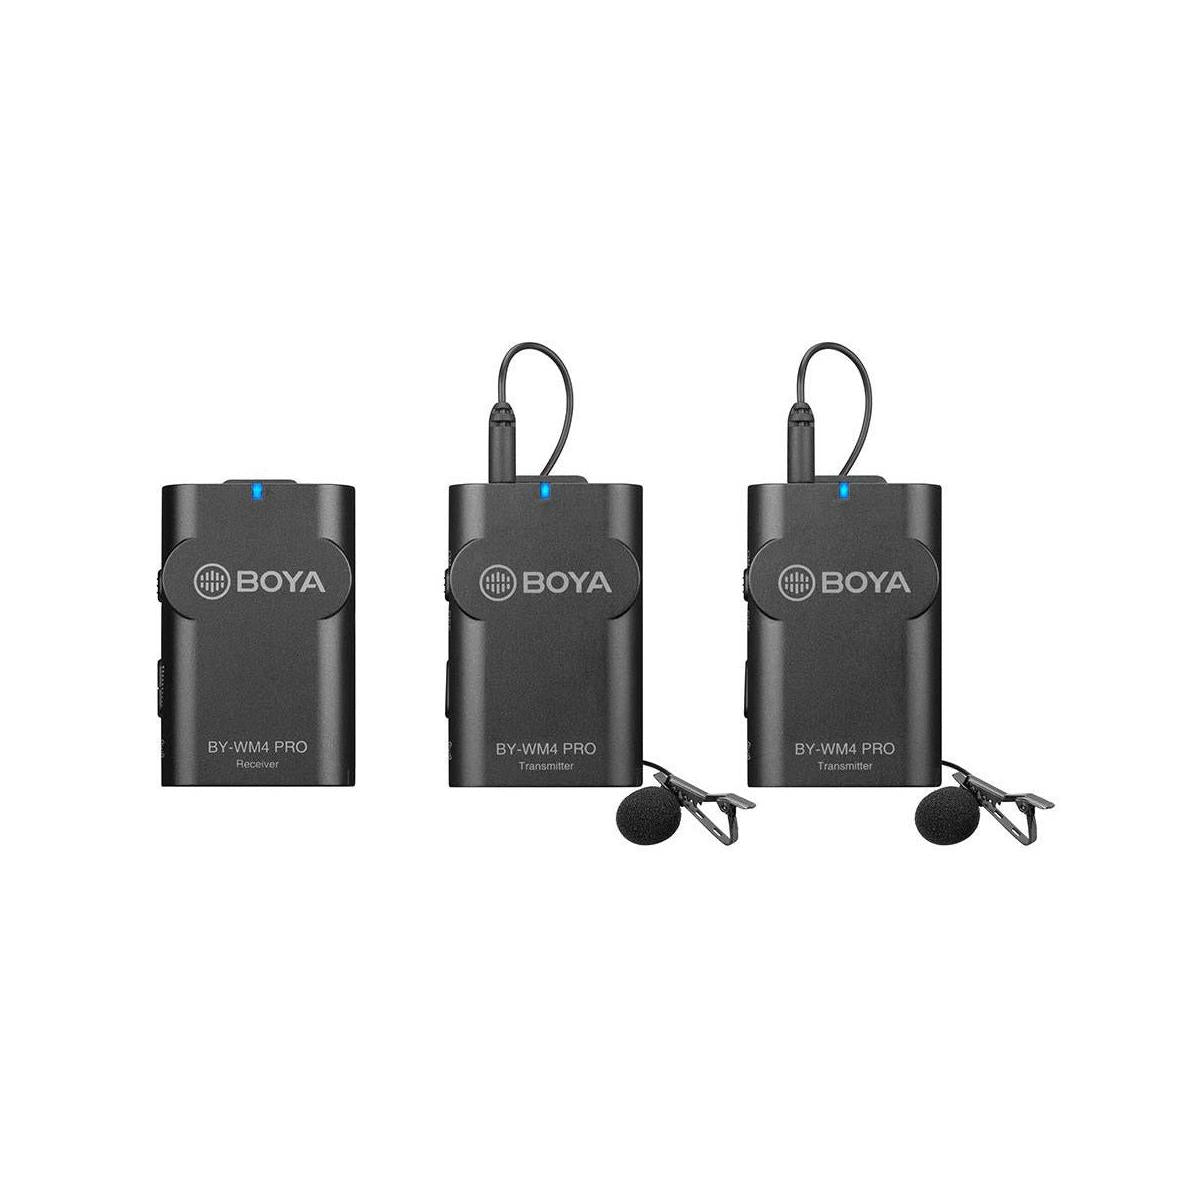 BOYA BY-WM4 PRO K2 Dual-Channel Digital Wireless Microphone System for DSLRs and Smartphones, Includes 2x Transmitter, 1x Receiver & Lavalier Mic